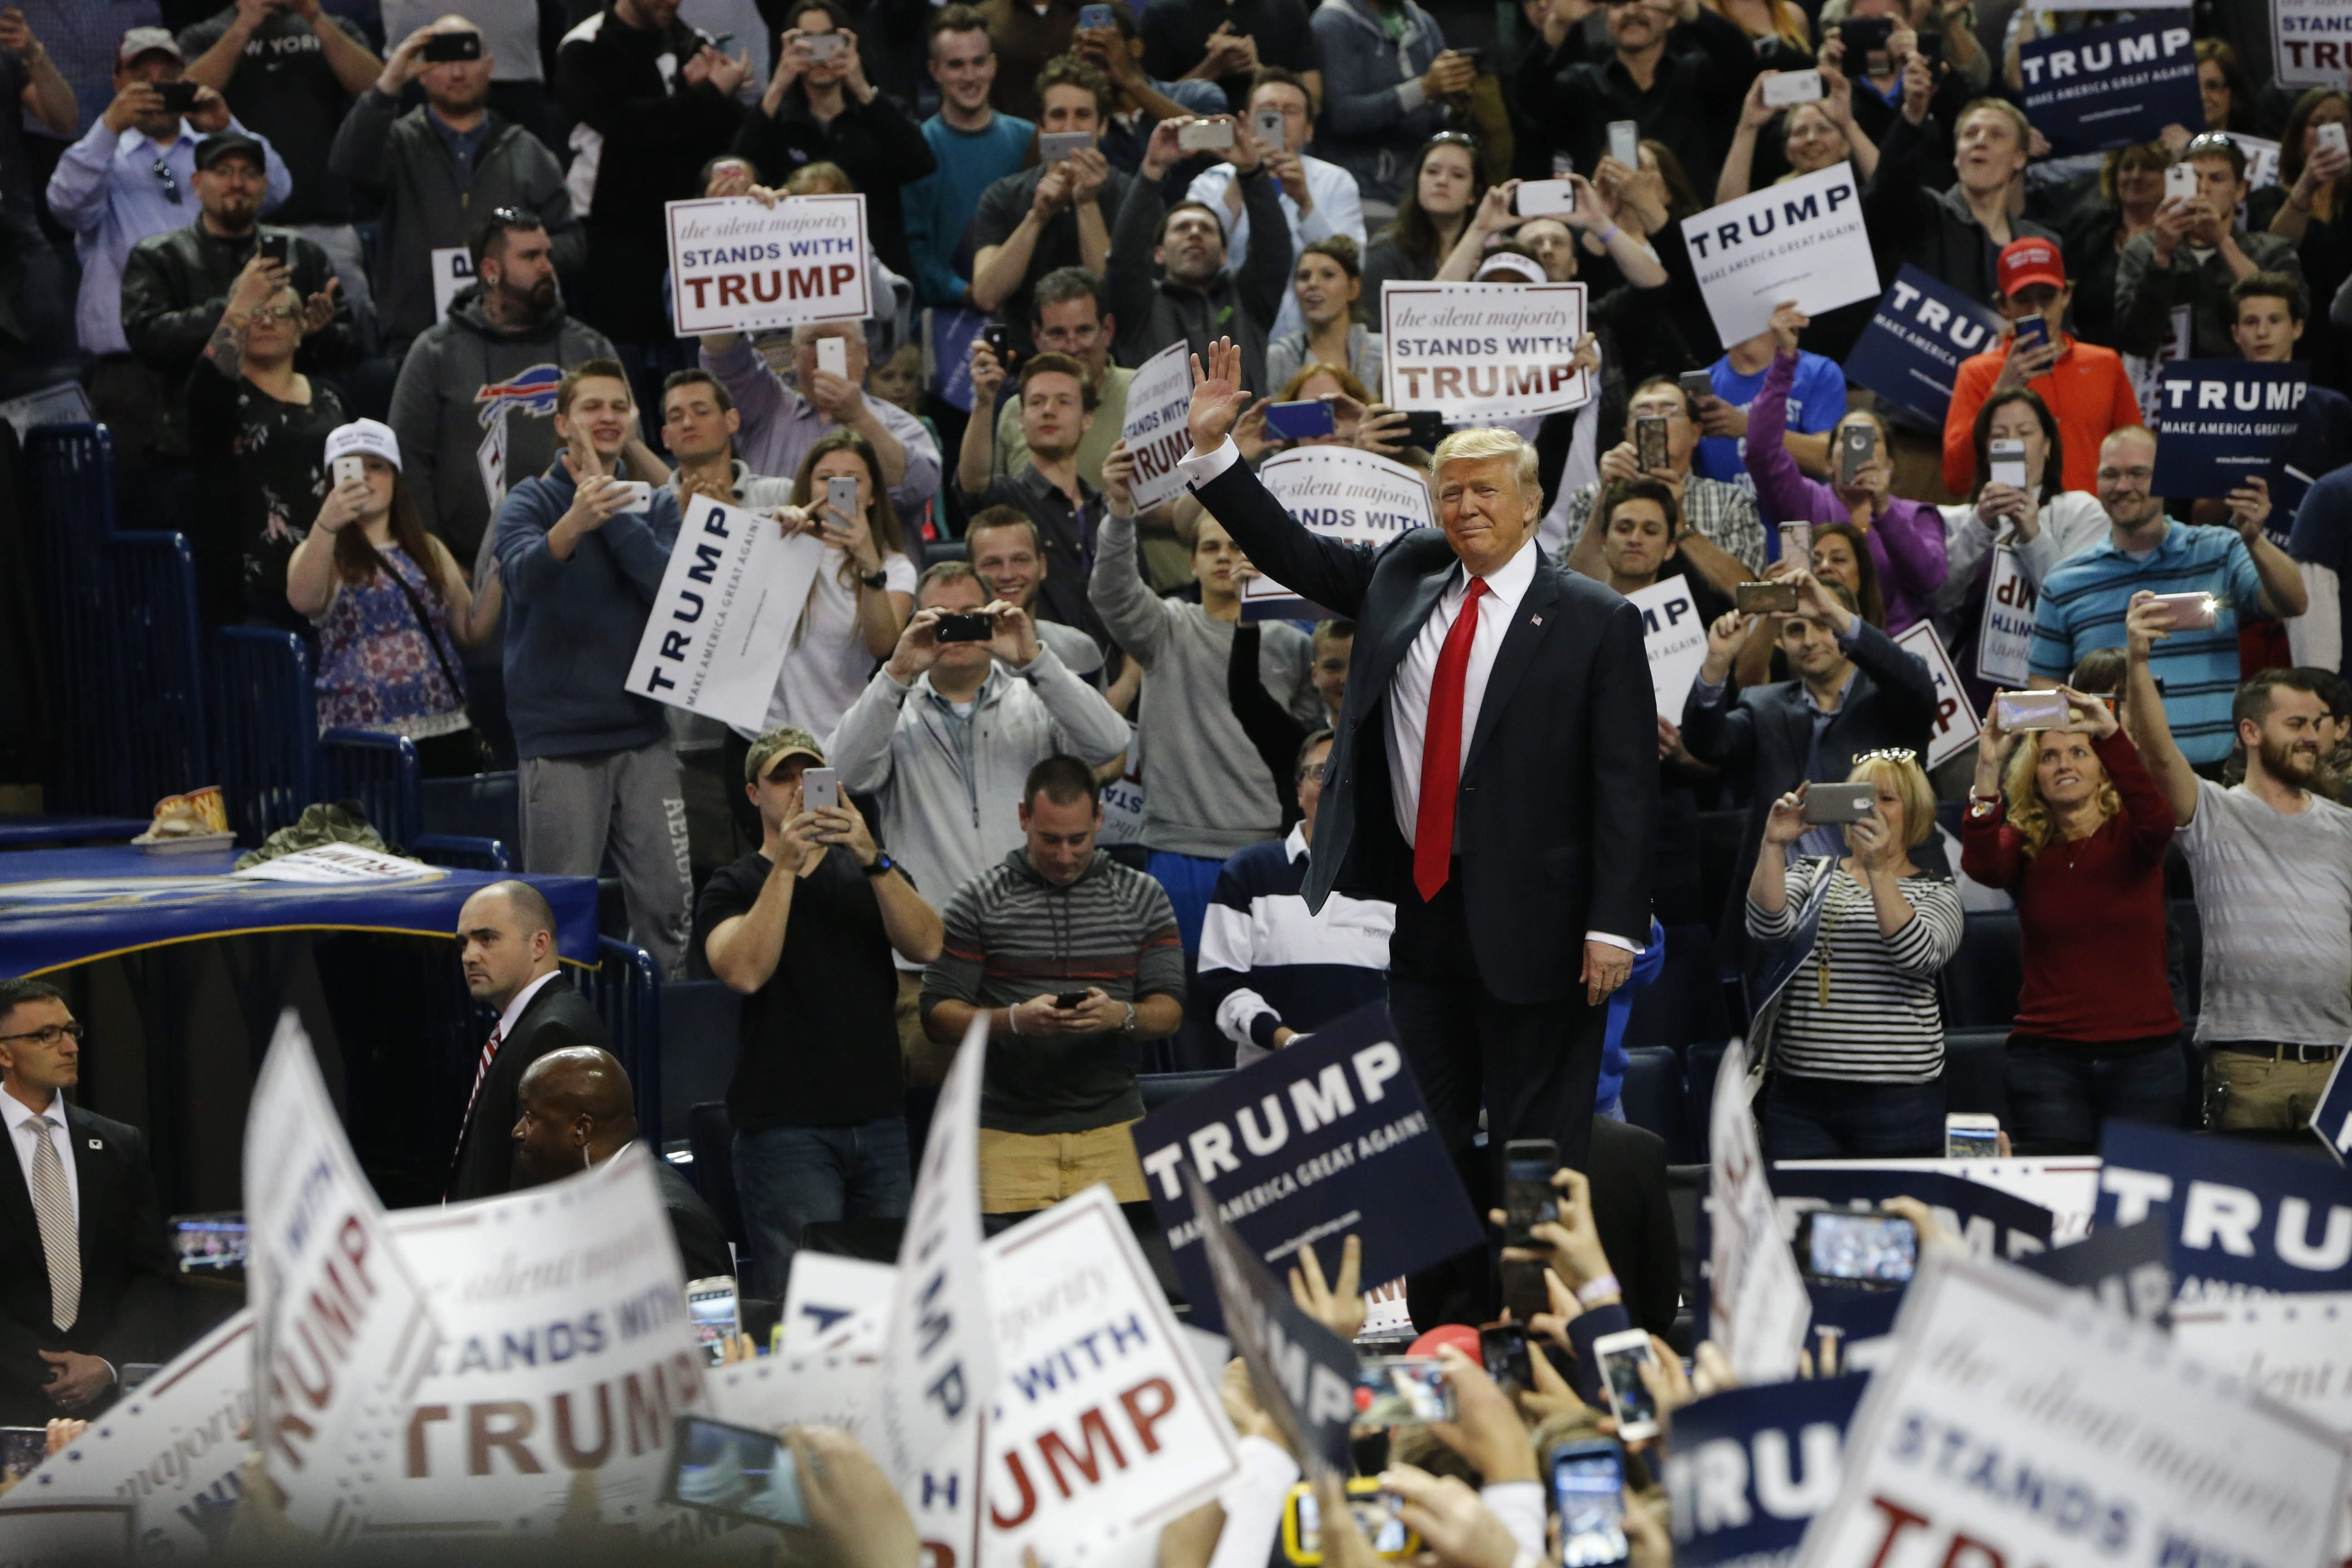 Donald Trump makes his entrance at the First Niagara Center in Buffalo at a rally before the New York primary on April 18, 2016.  (Derek Gee/Buffalo News)